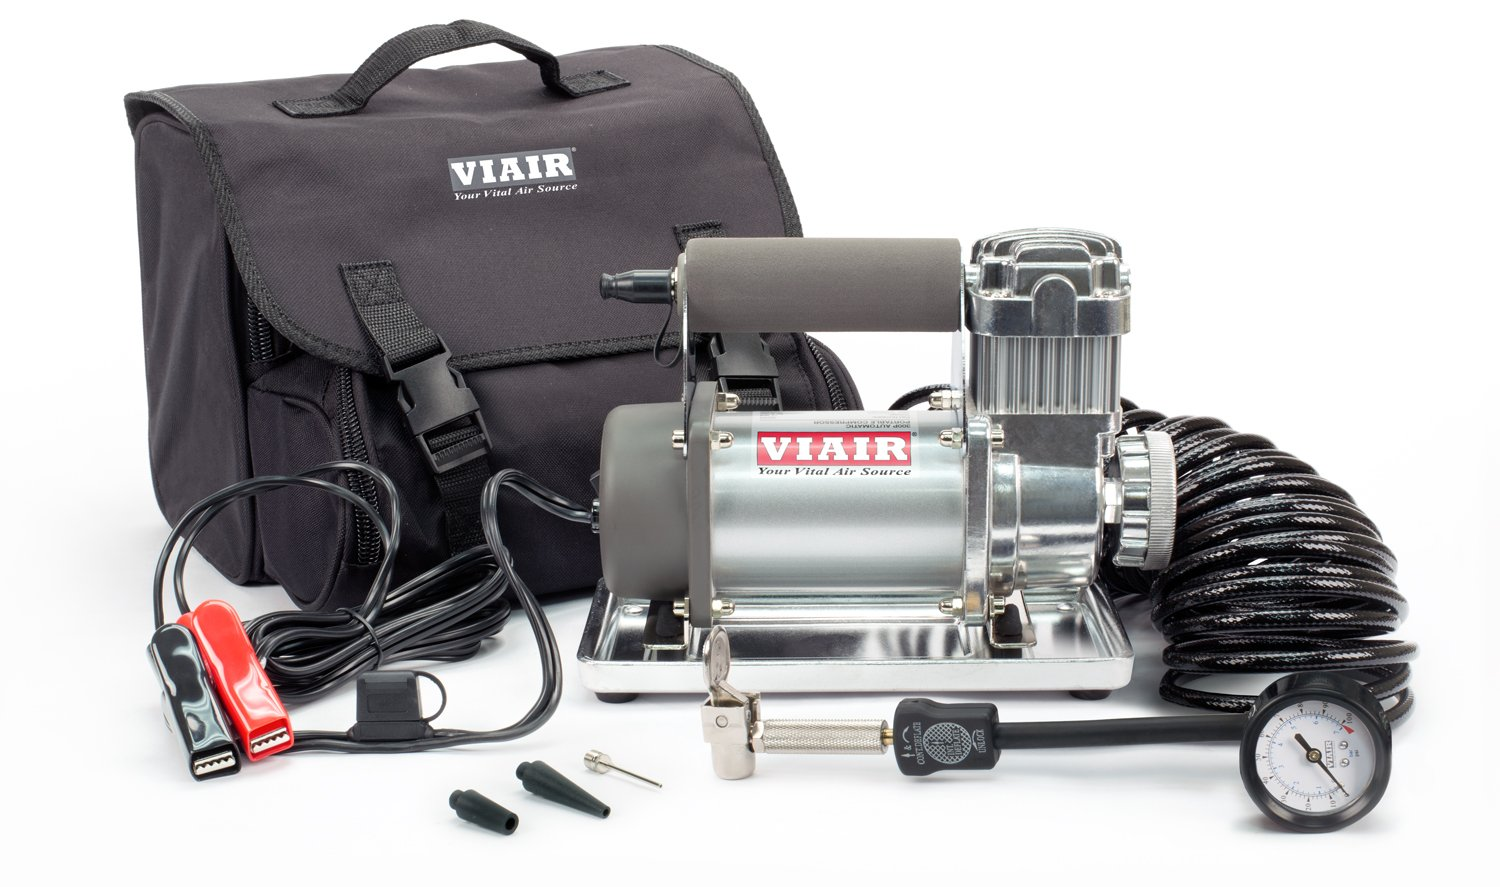 Viair 300P Portable Compressor VIAIS 30033